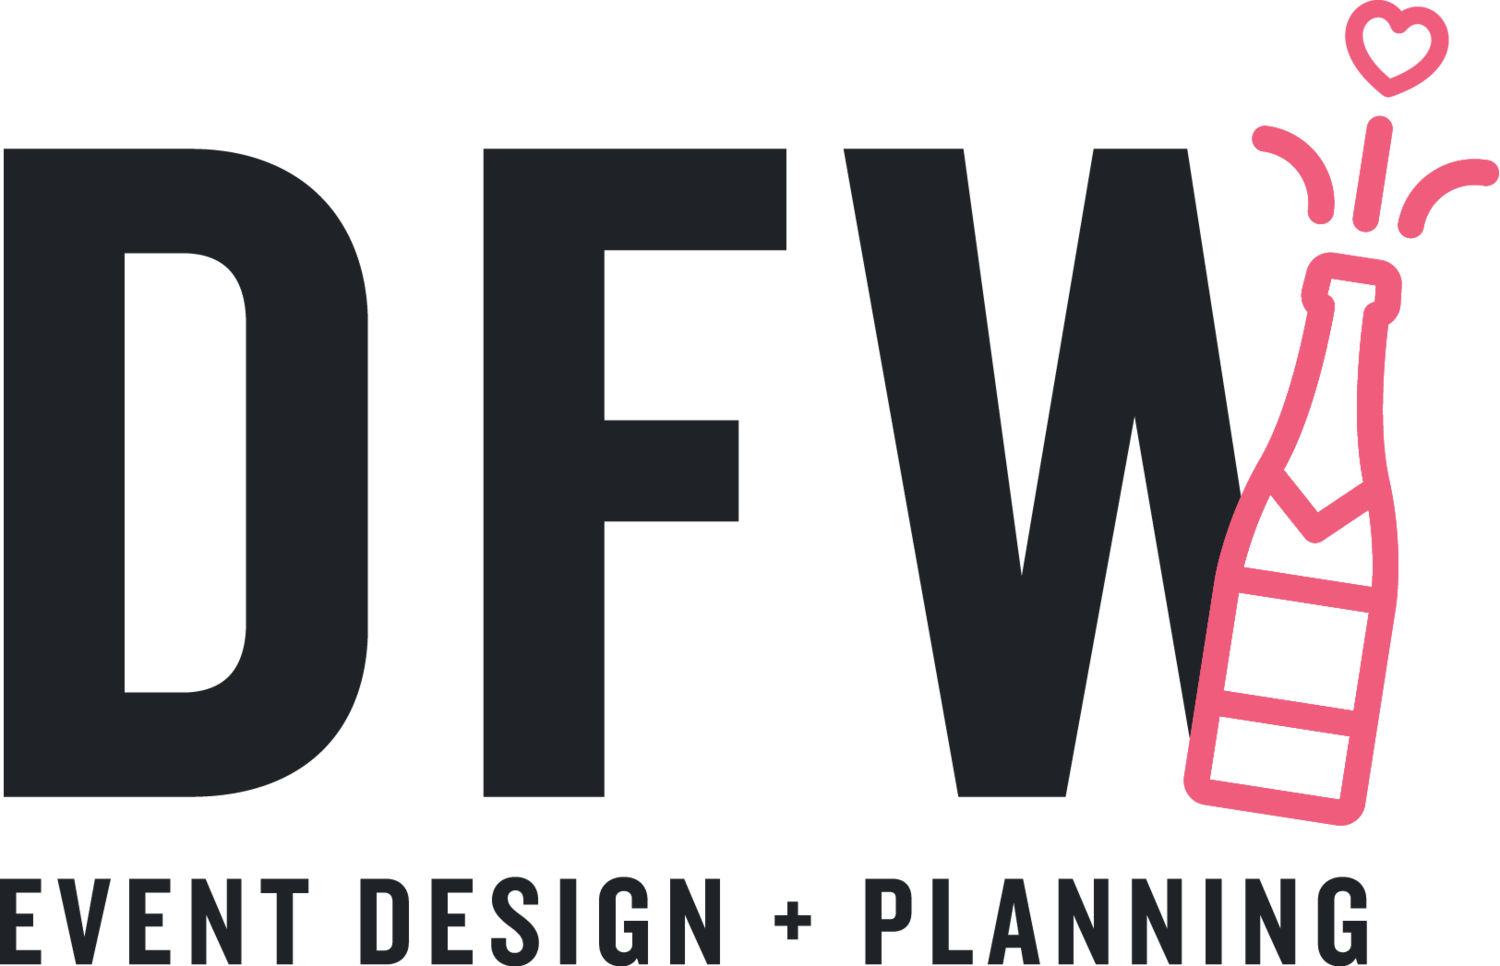 DFW Event Design + Planning